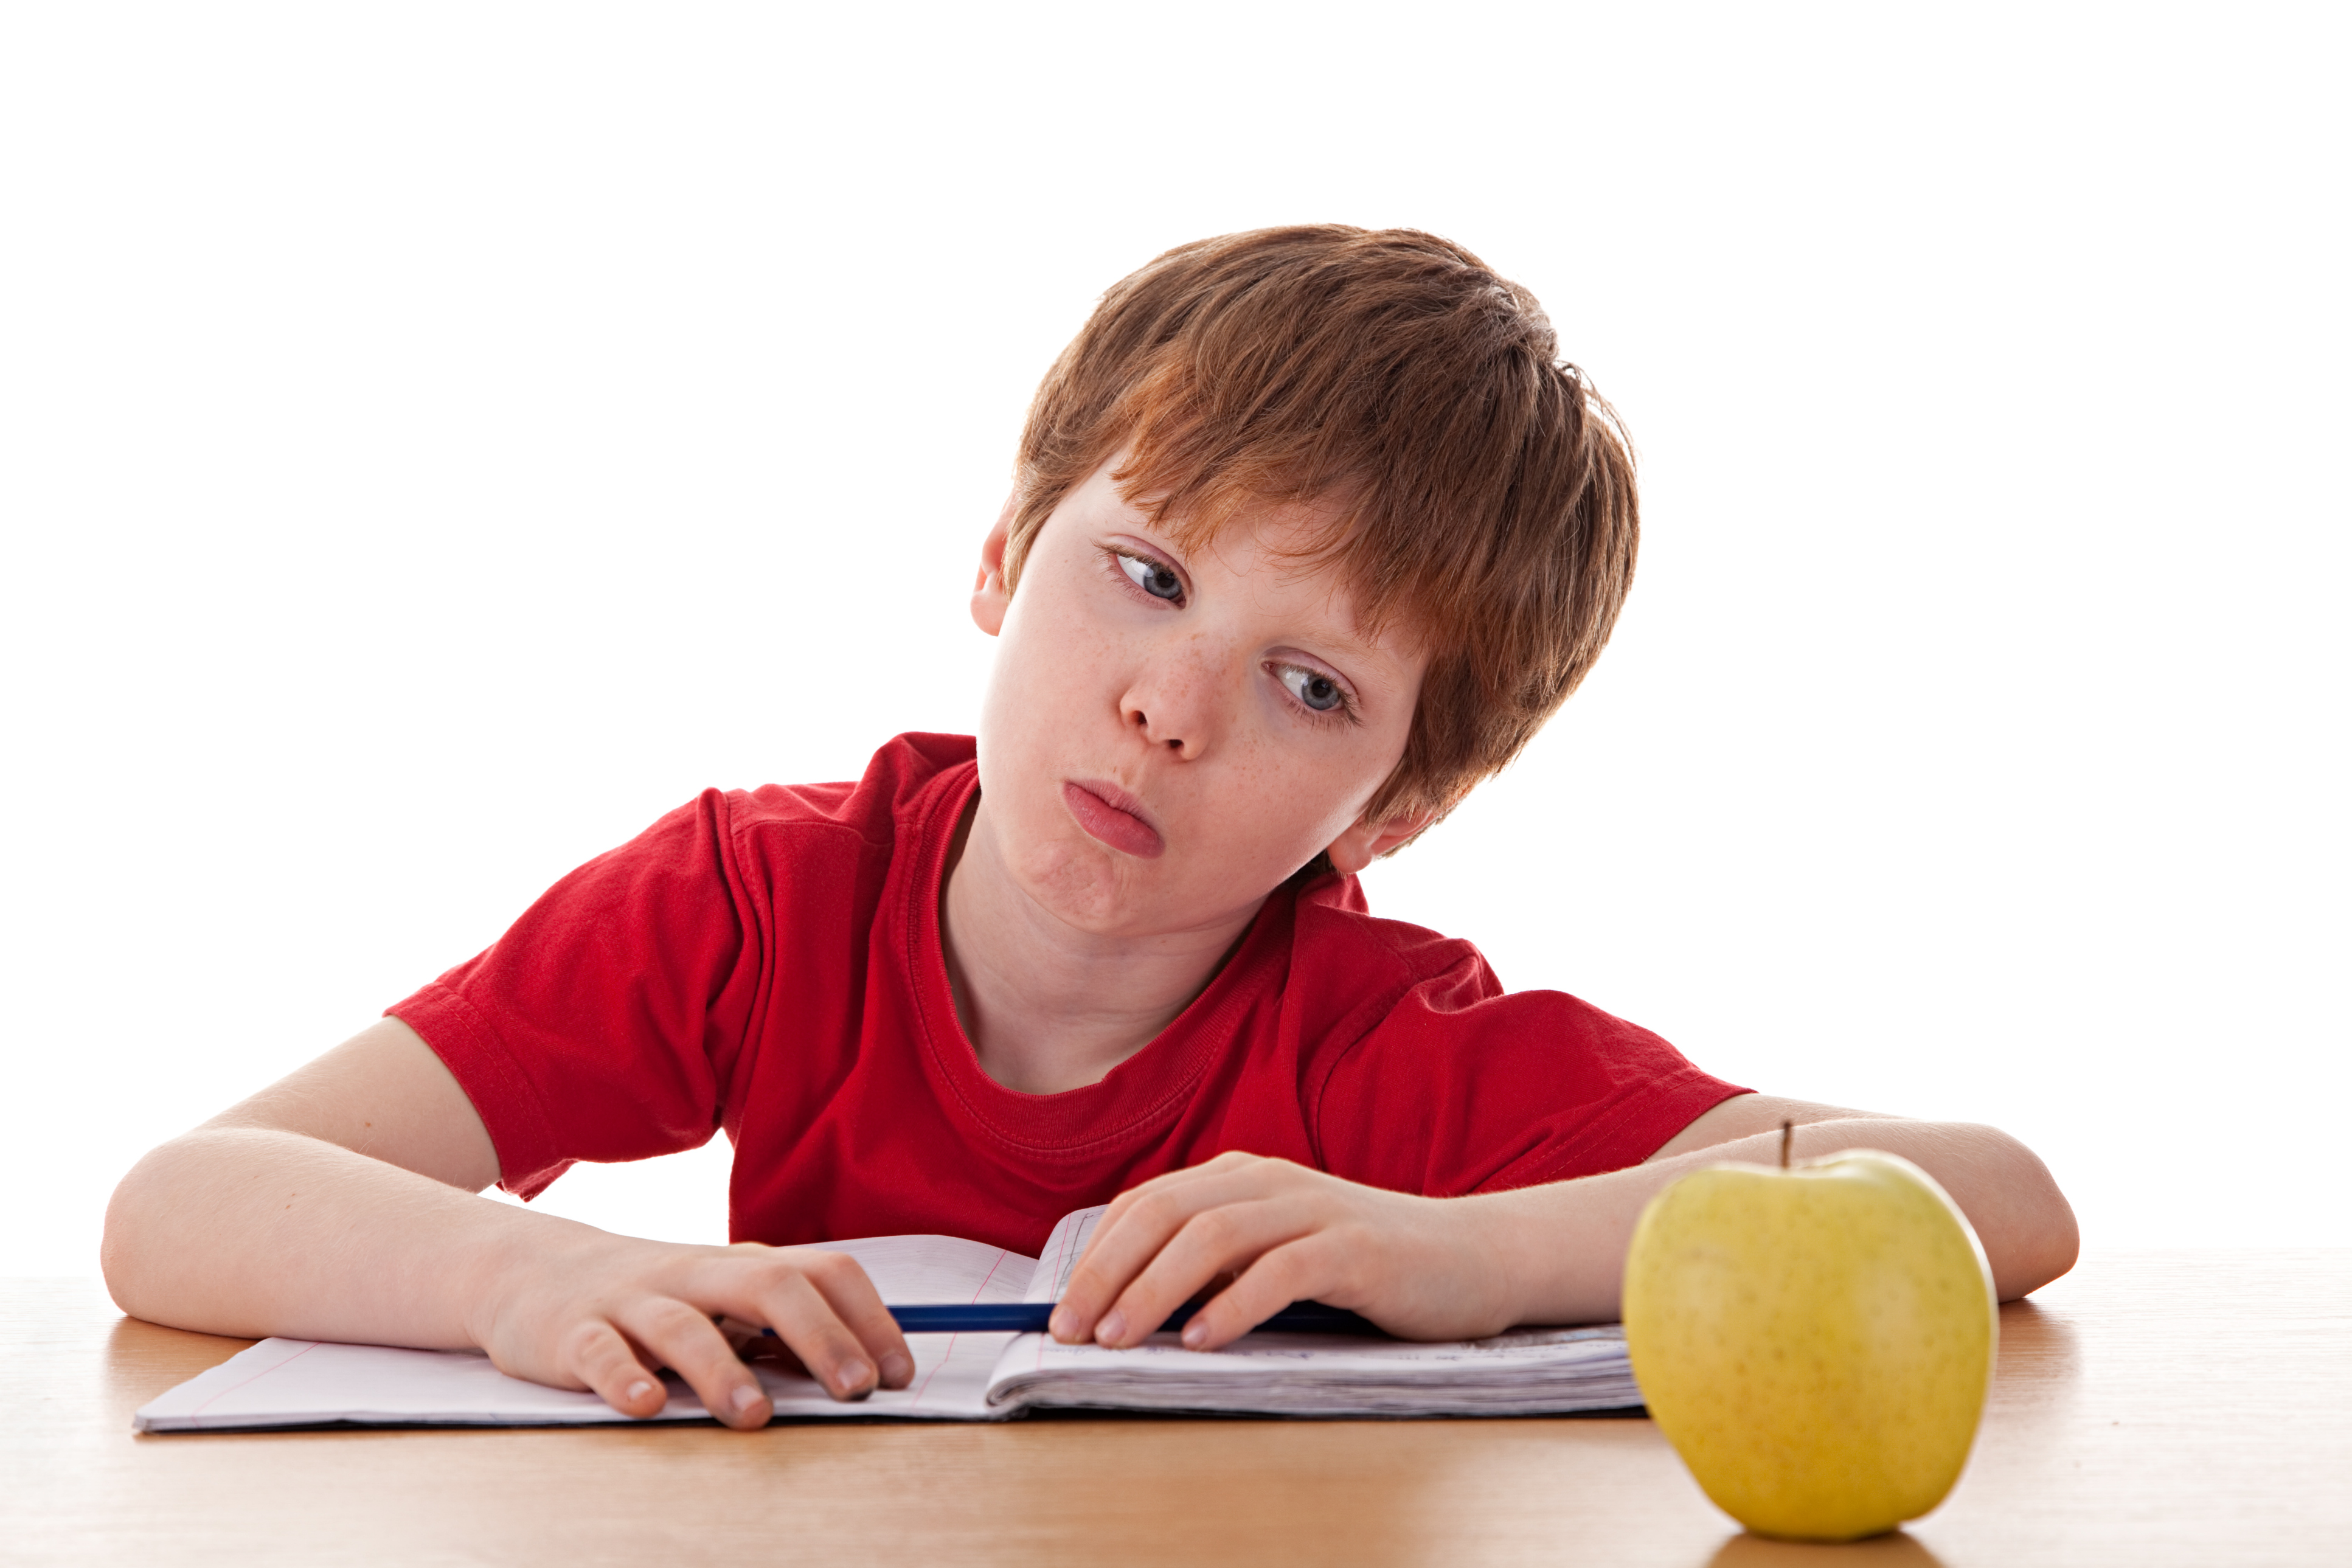 Worksheet Helping Students With Adhd adhd homework anxiety how to tell if your child has add or a list of the signs